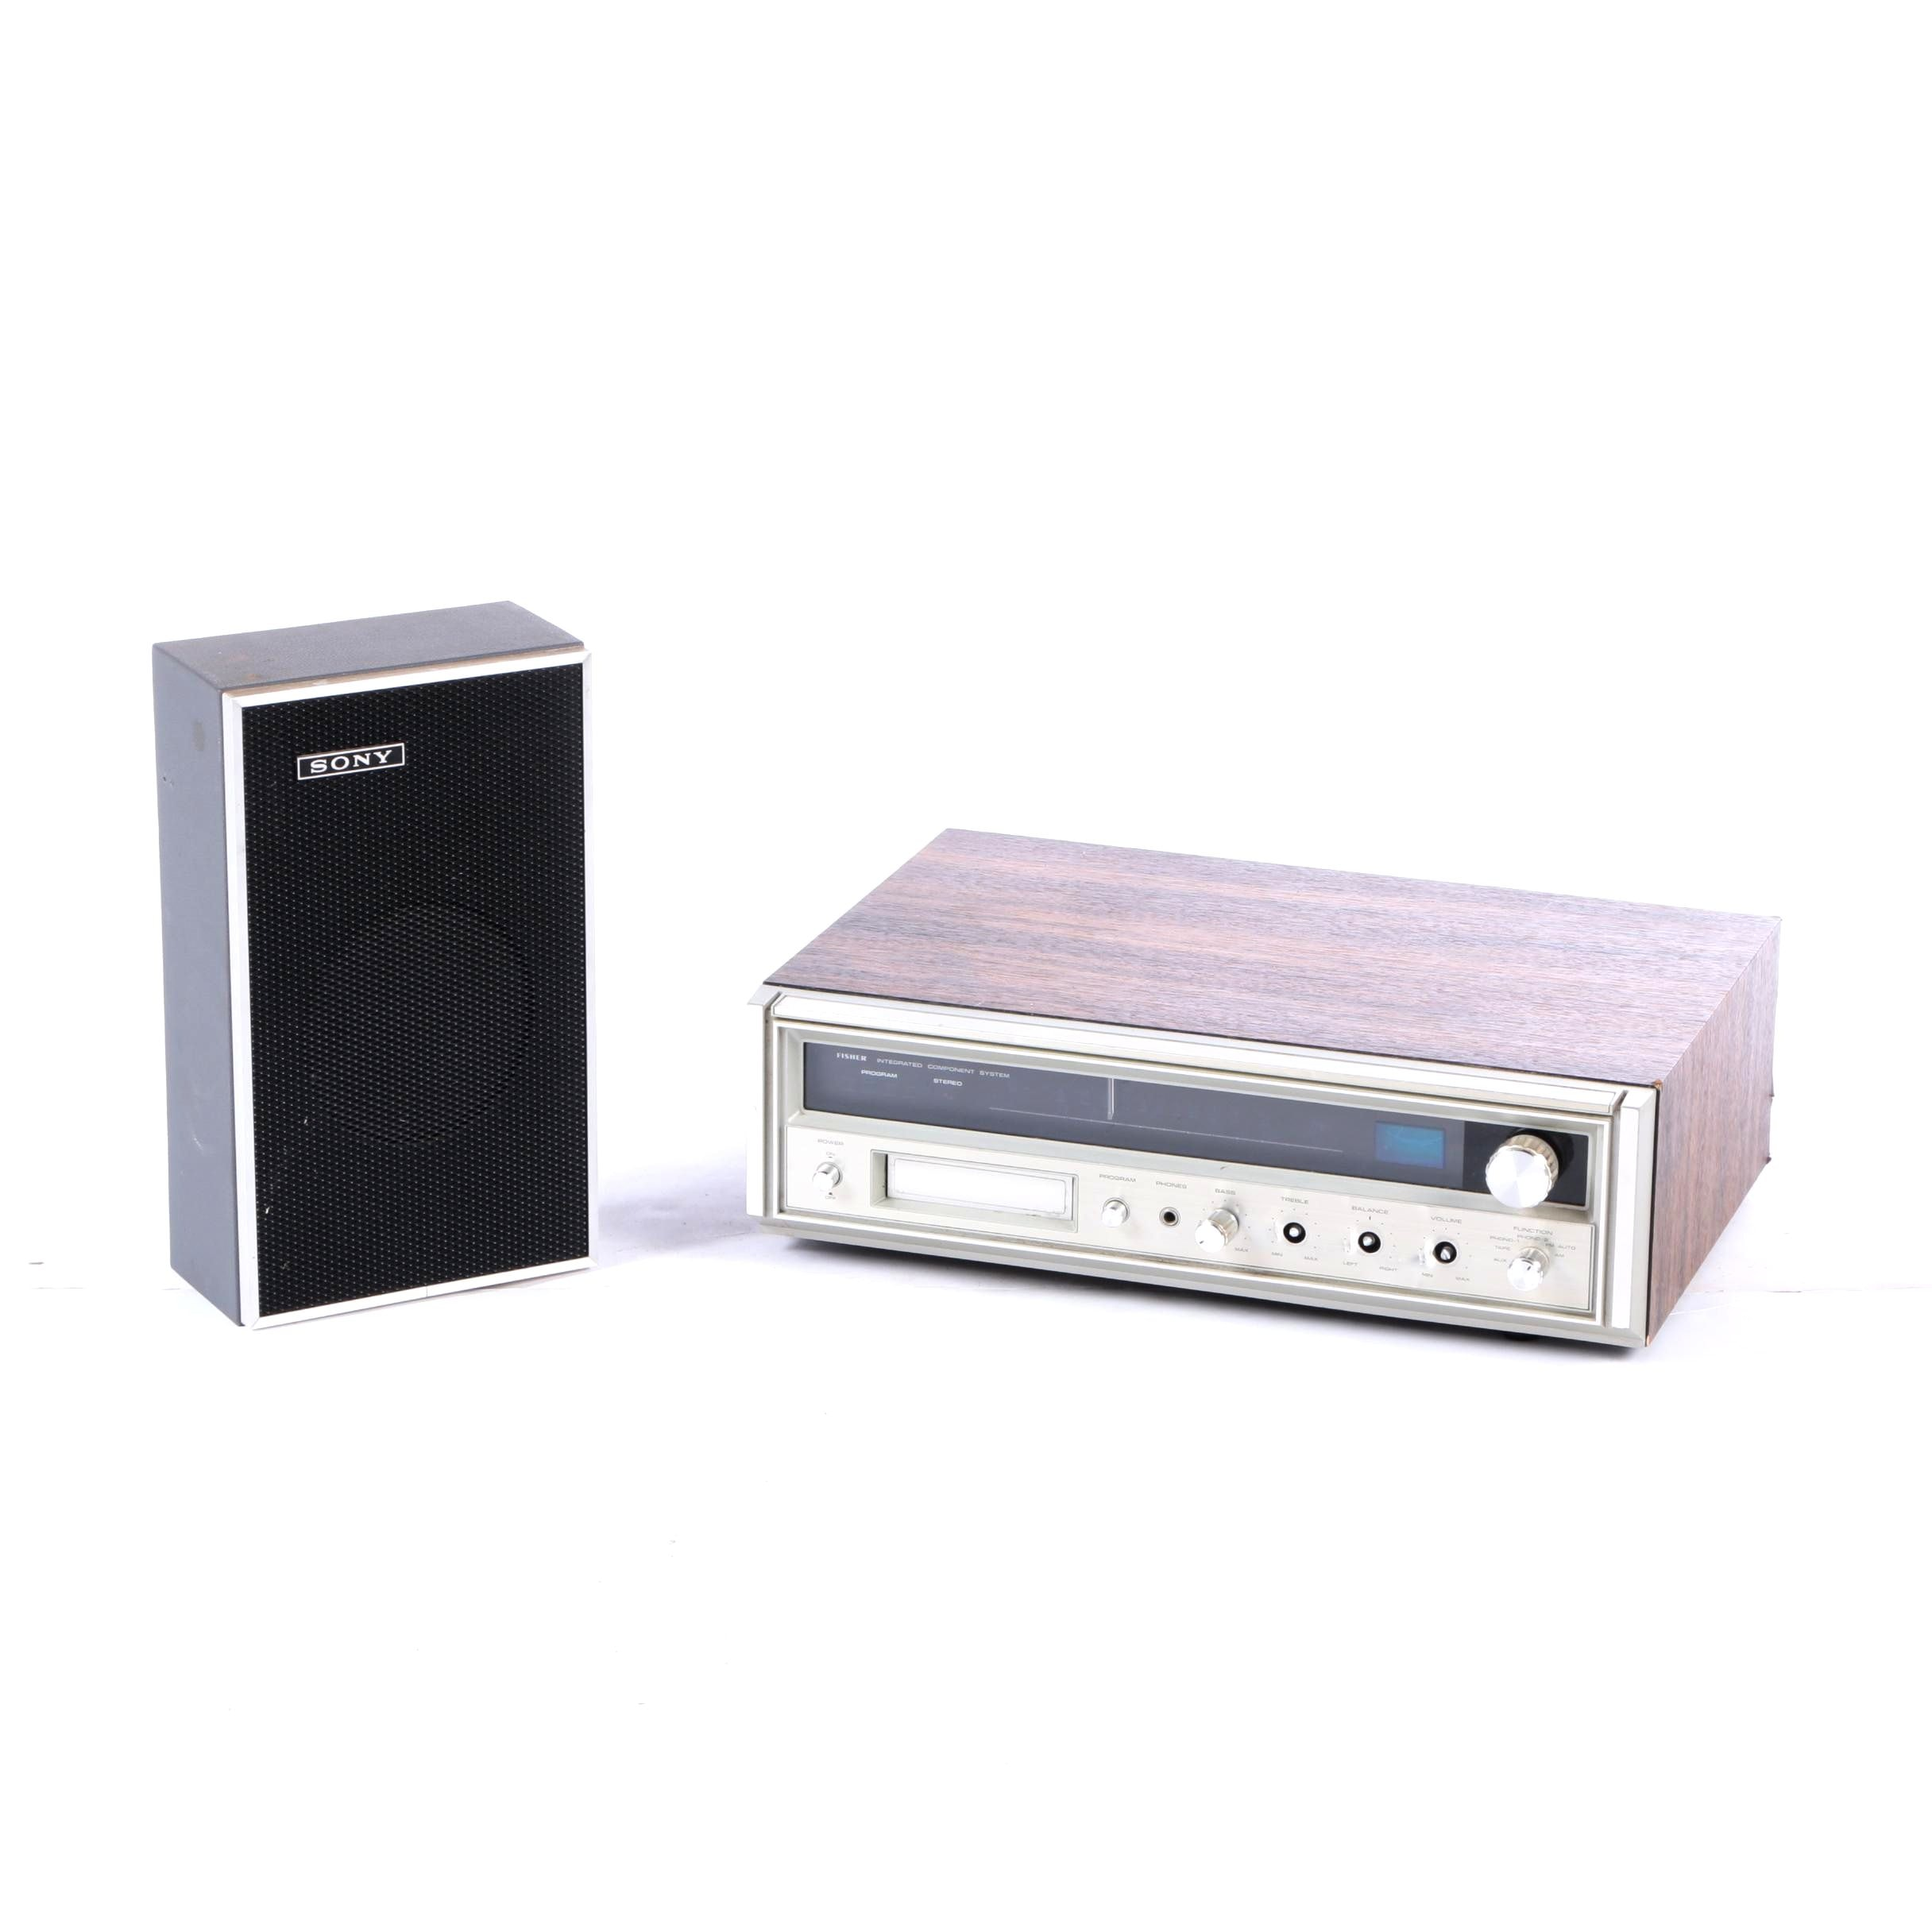 tape player and Sony speaker